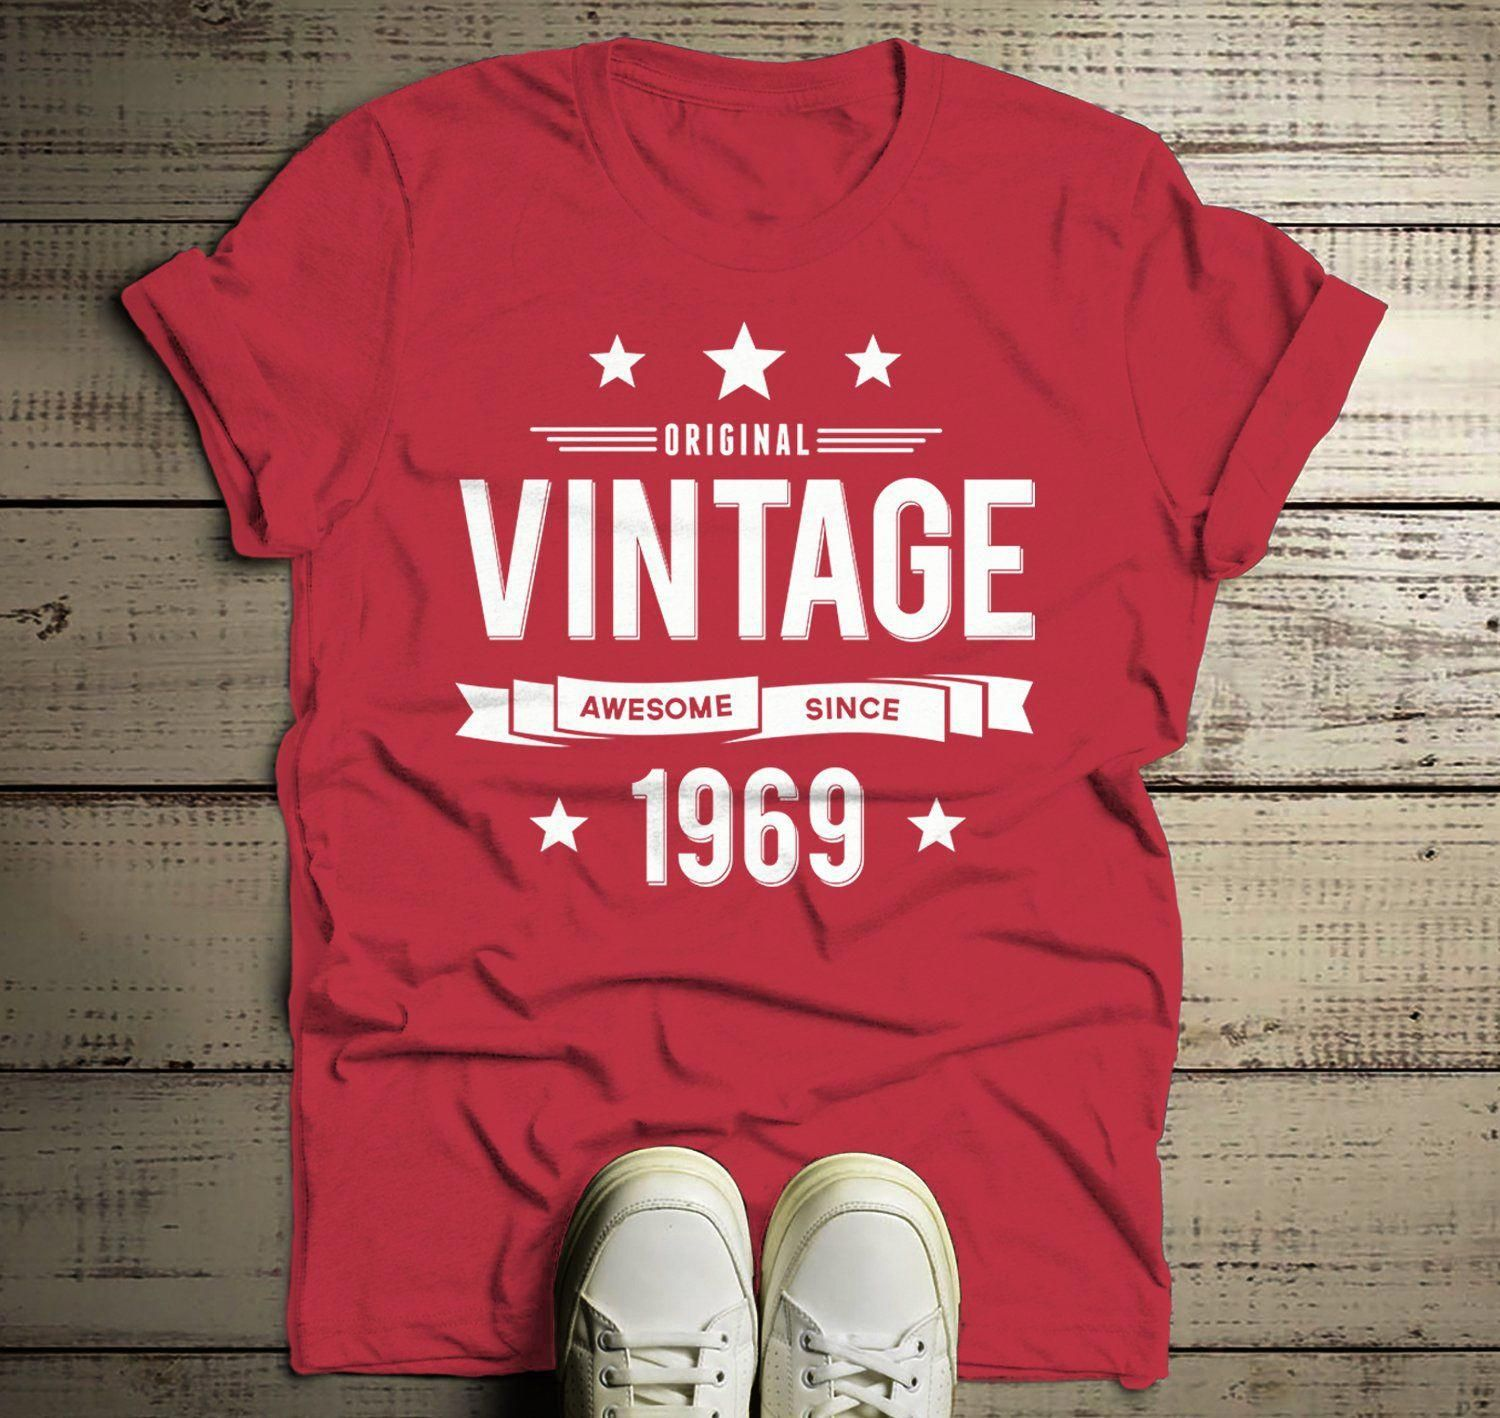 6ecd03d89 Men's 50th Birthday T Shirt Original Vintage Shirt Awesome Since 1969 Gift  Idea 50th Birthday Shirts Vintage Tee Vintage Shirt #MensT-shirts